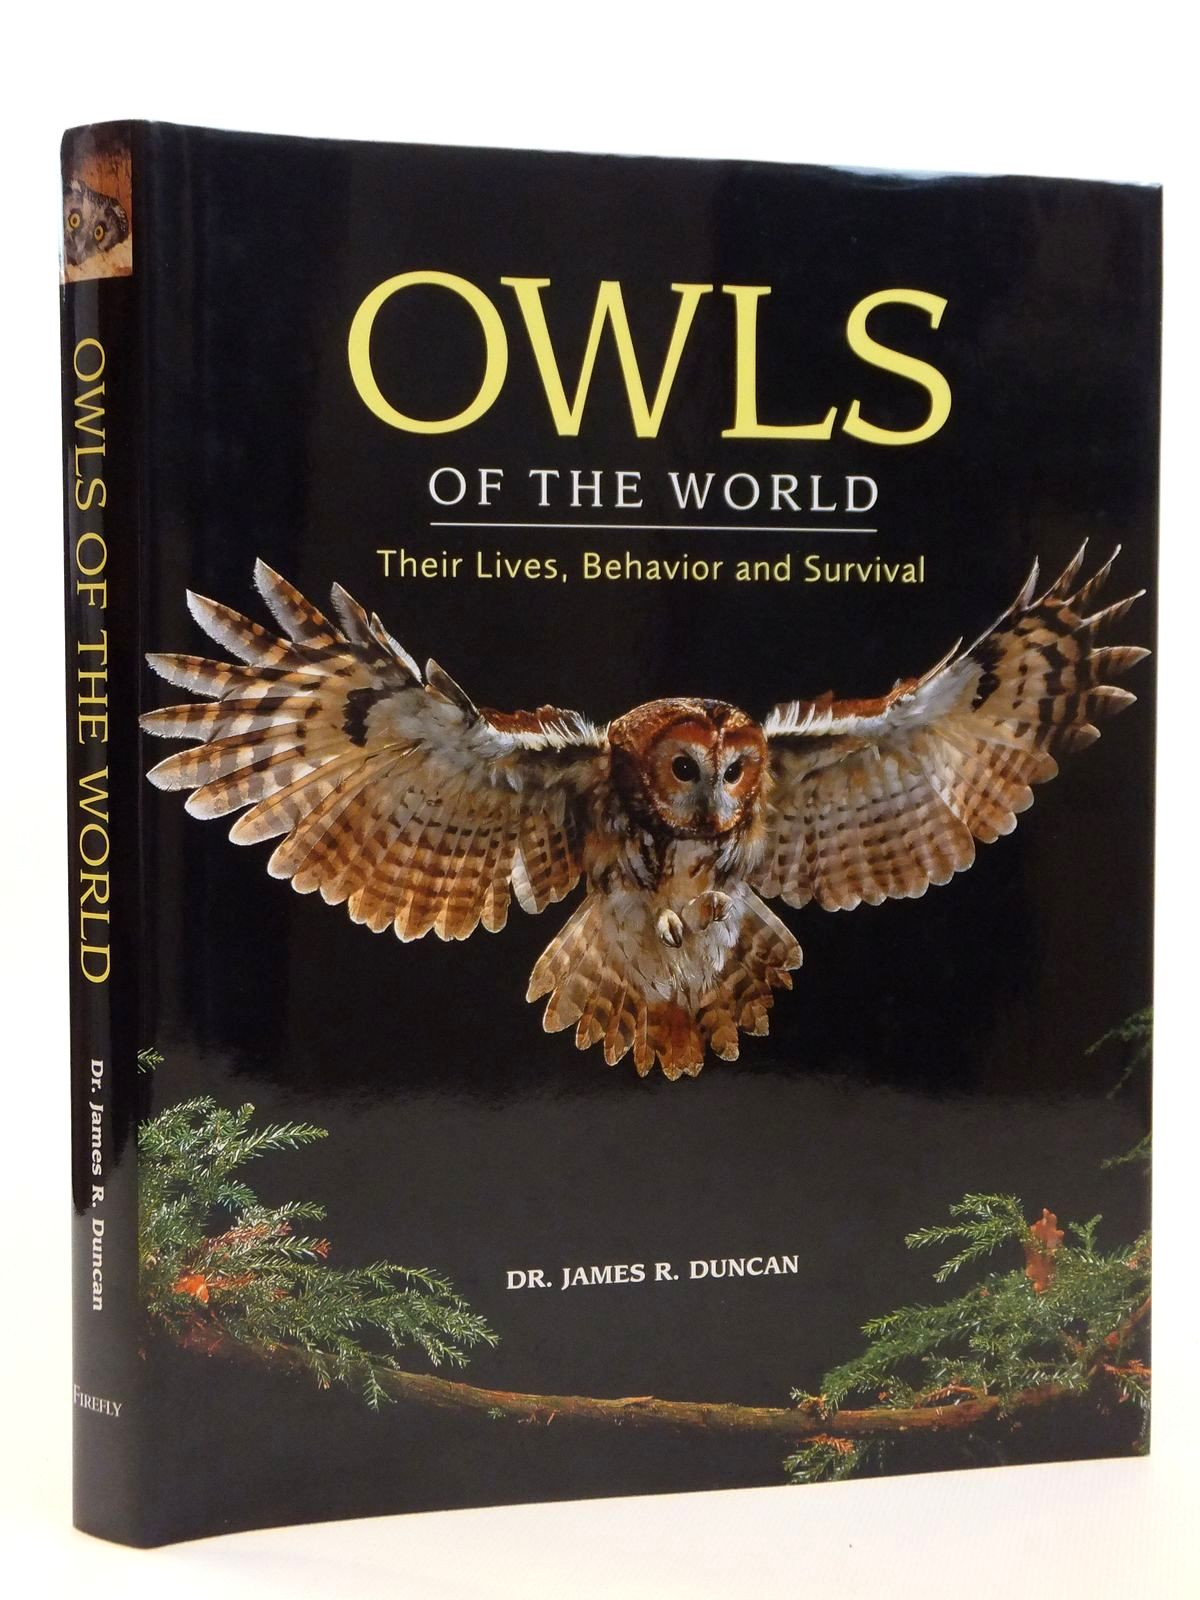 Photo of OWLS OF THE WORLD THEIR LIVES, BEHAVIOR AND SURVIVAL